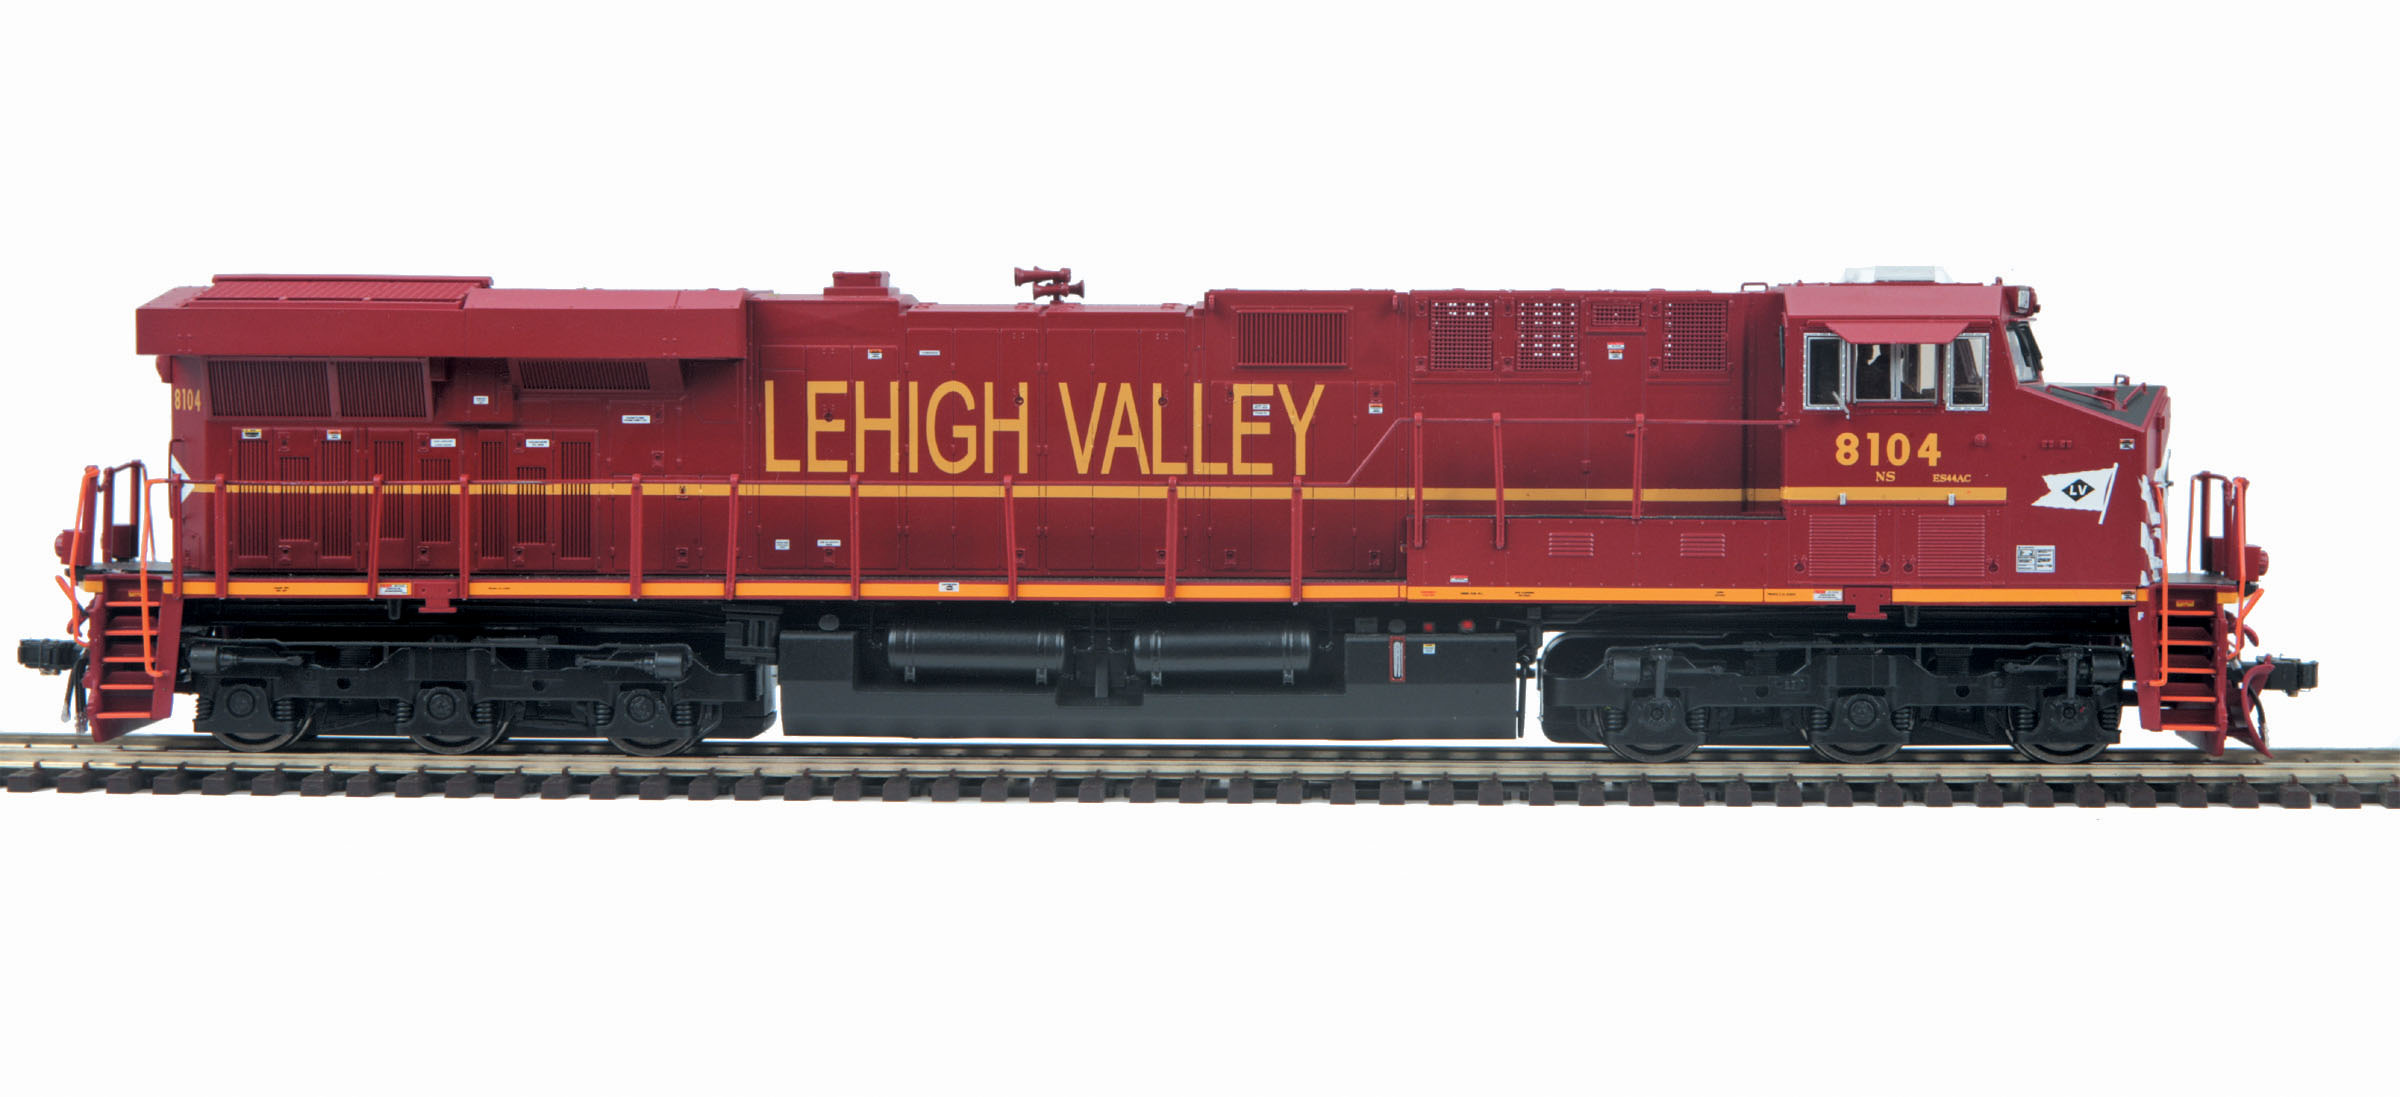 80 2339 1 Mth Electric Trains